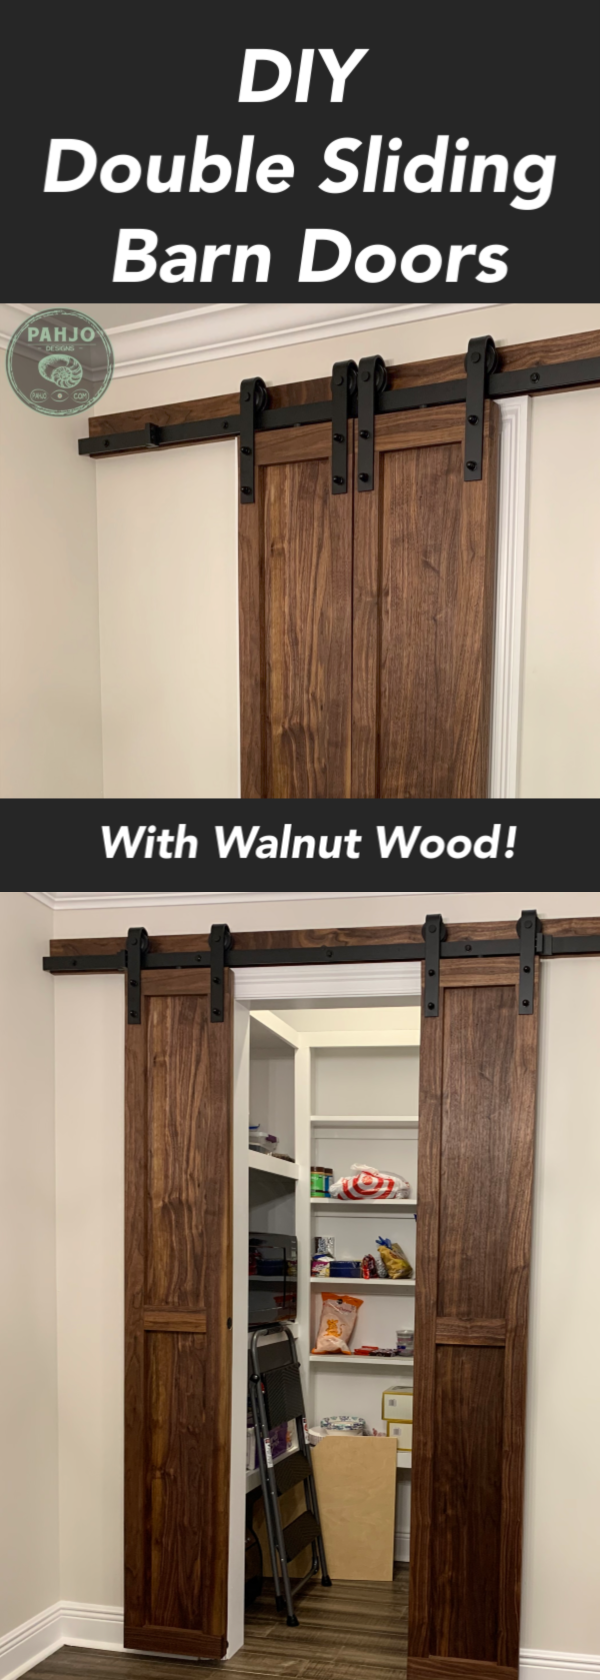 How to Build DIY Double Sliding Barn Doors images